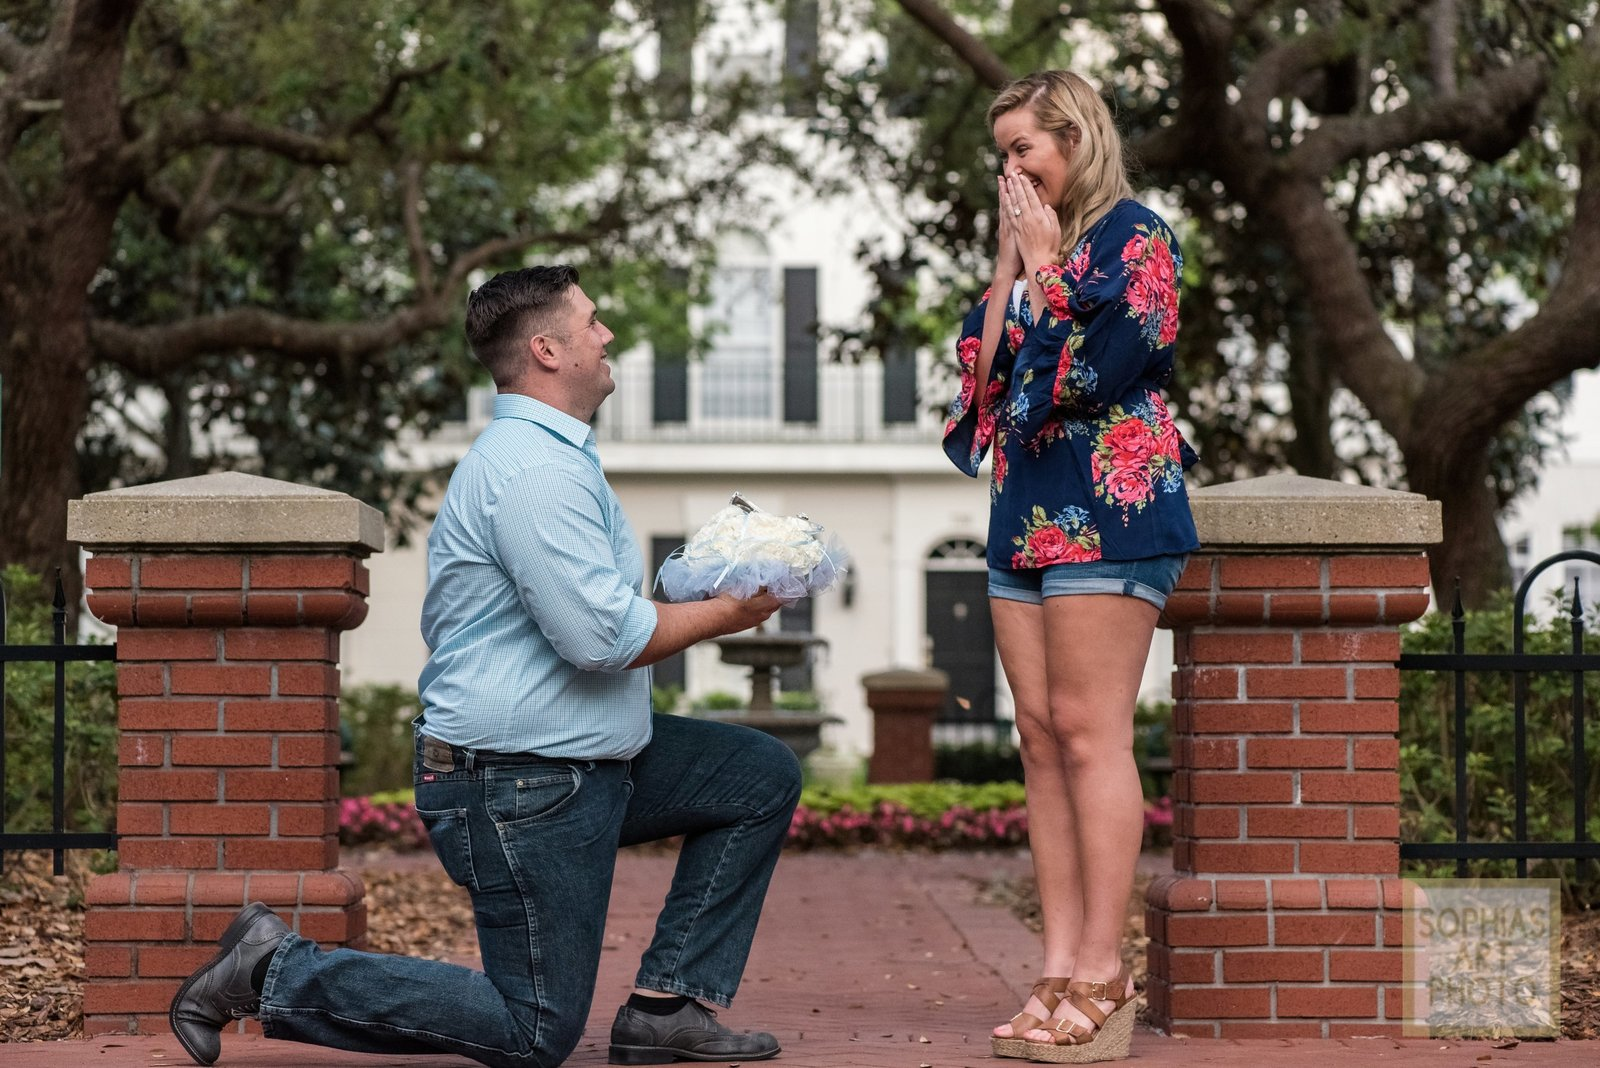 celebration-florida-engagement-katie-kenny-sophiasartphoto-0015